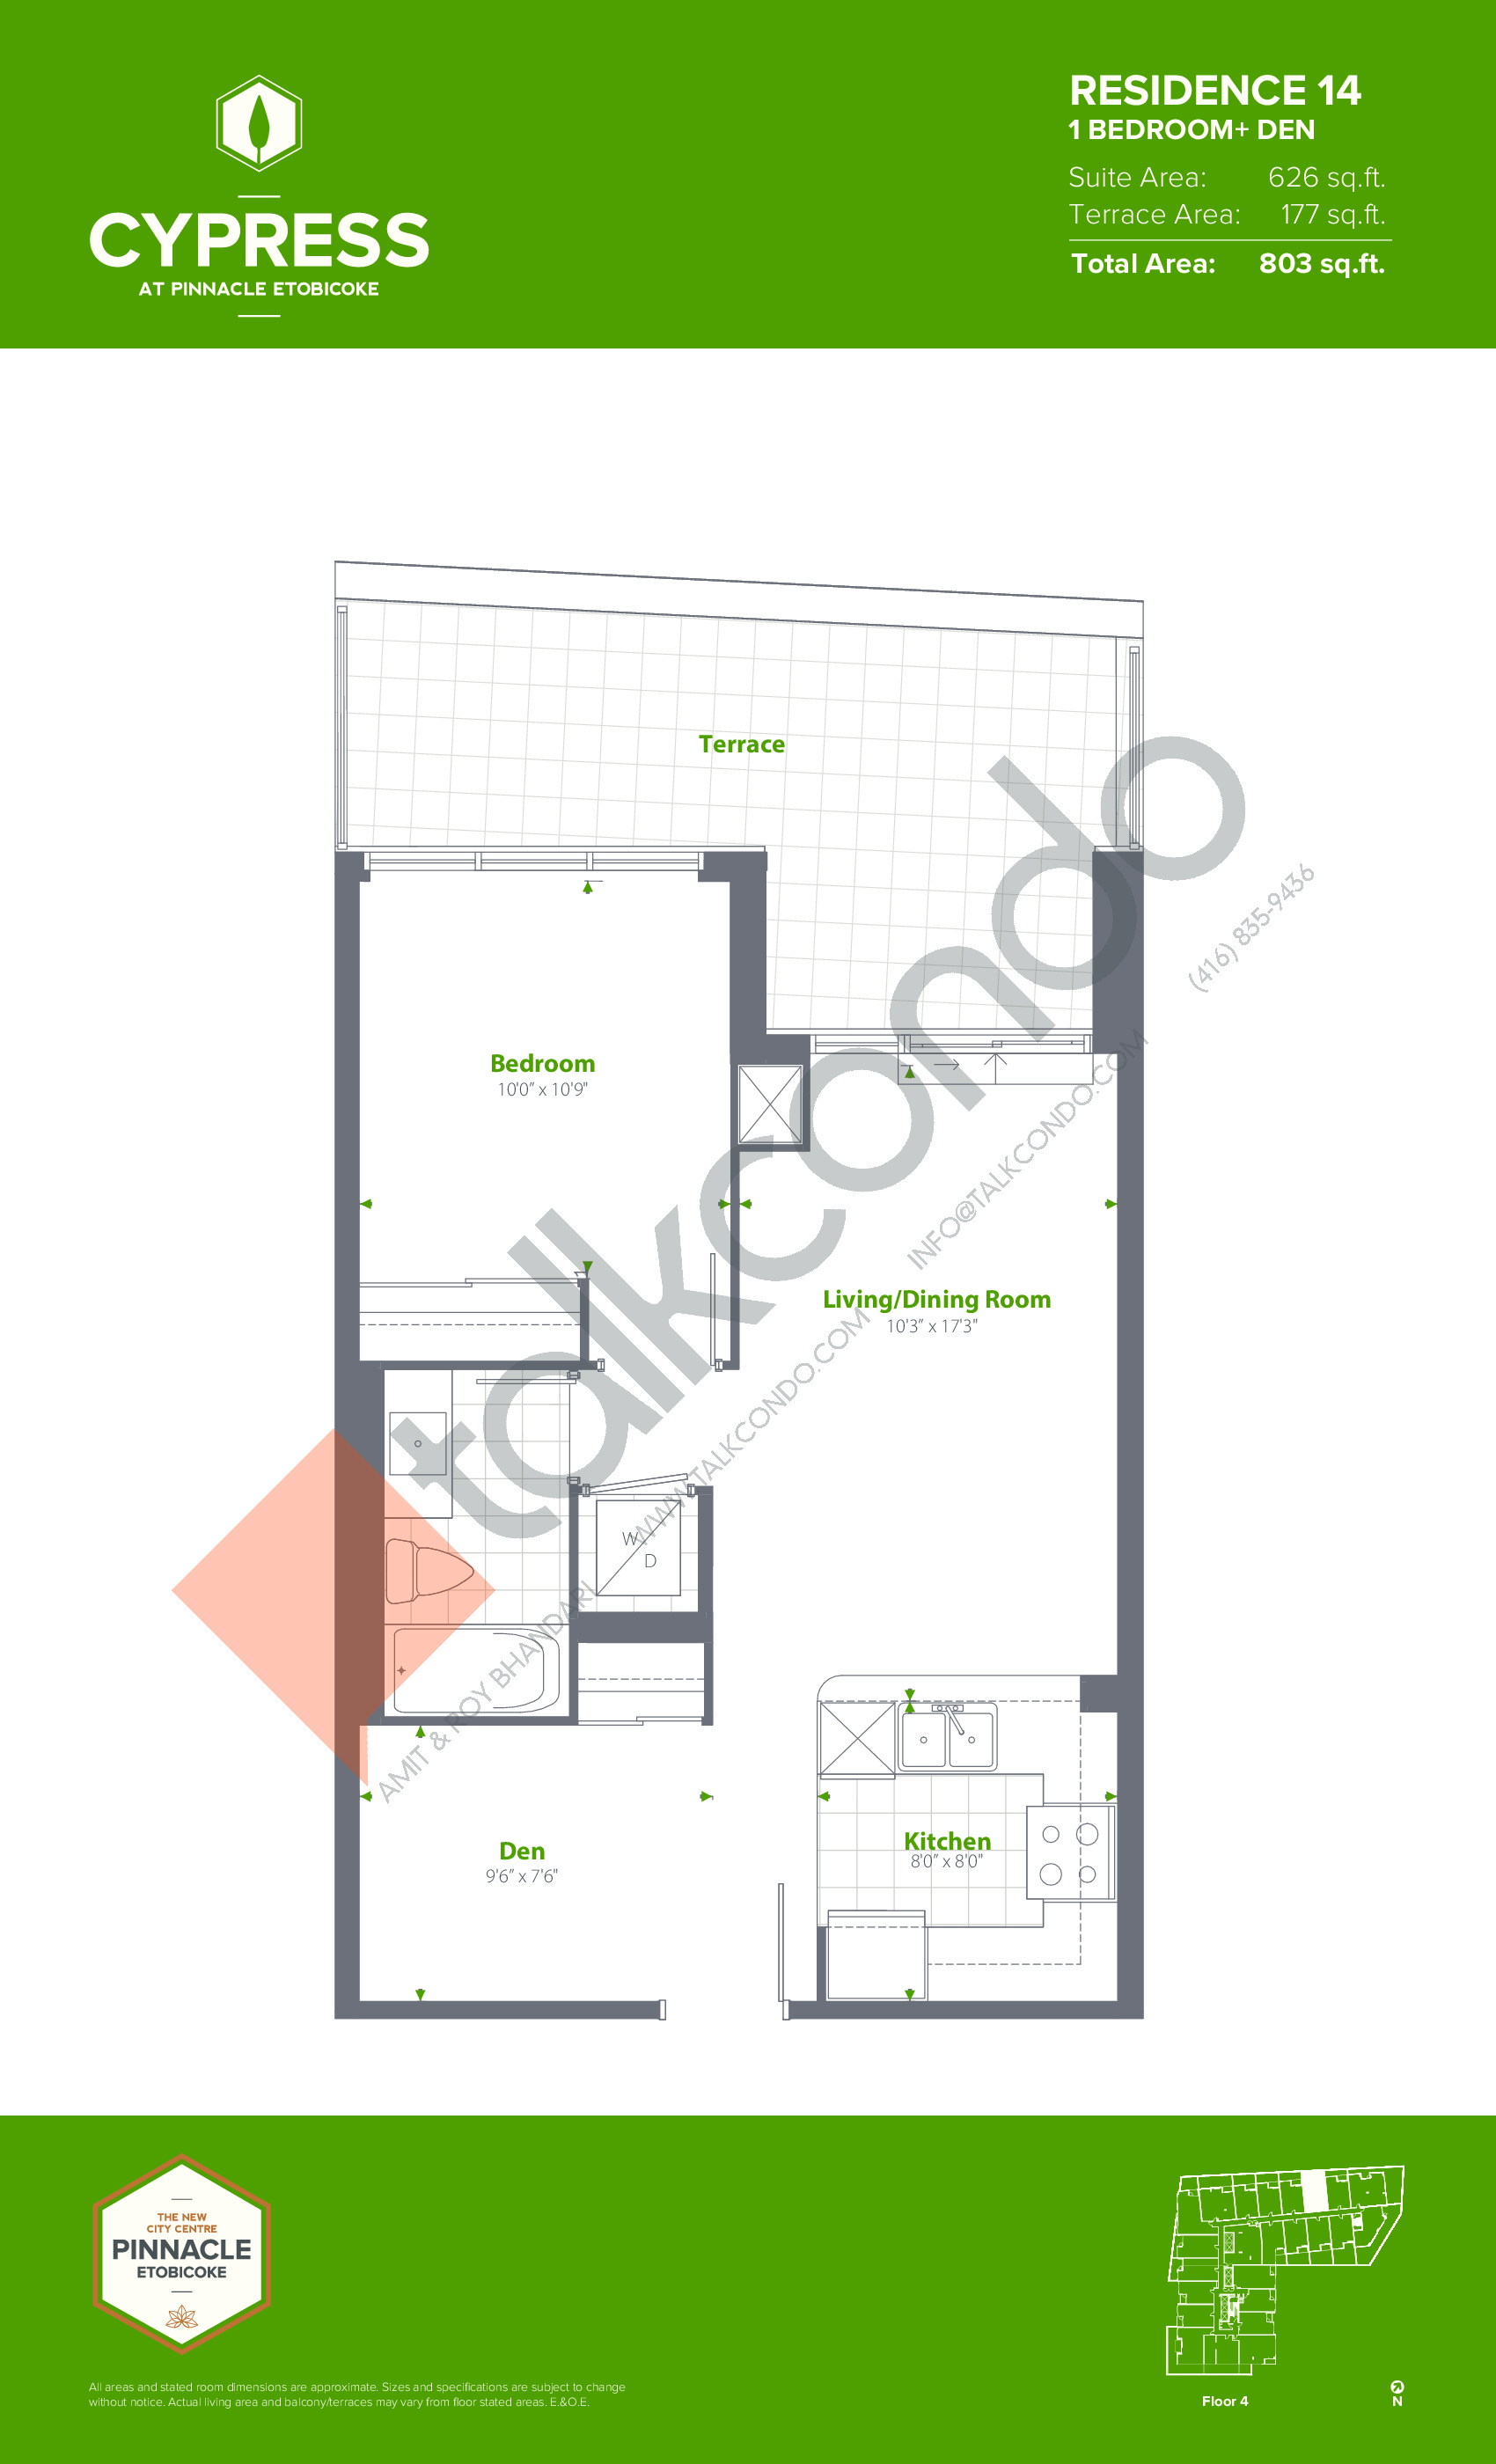 Residence 14 Floor Plan at Cypress at Pinnacle Etobicoke - 626 sq.ft